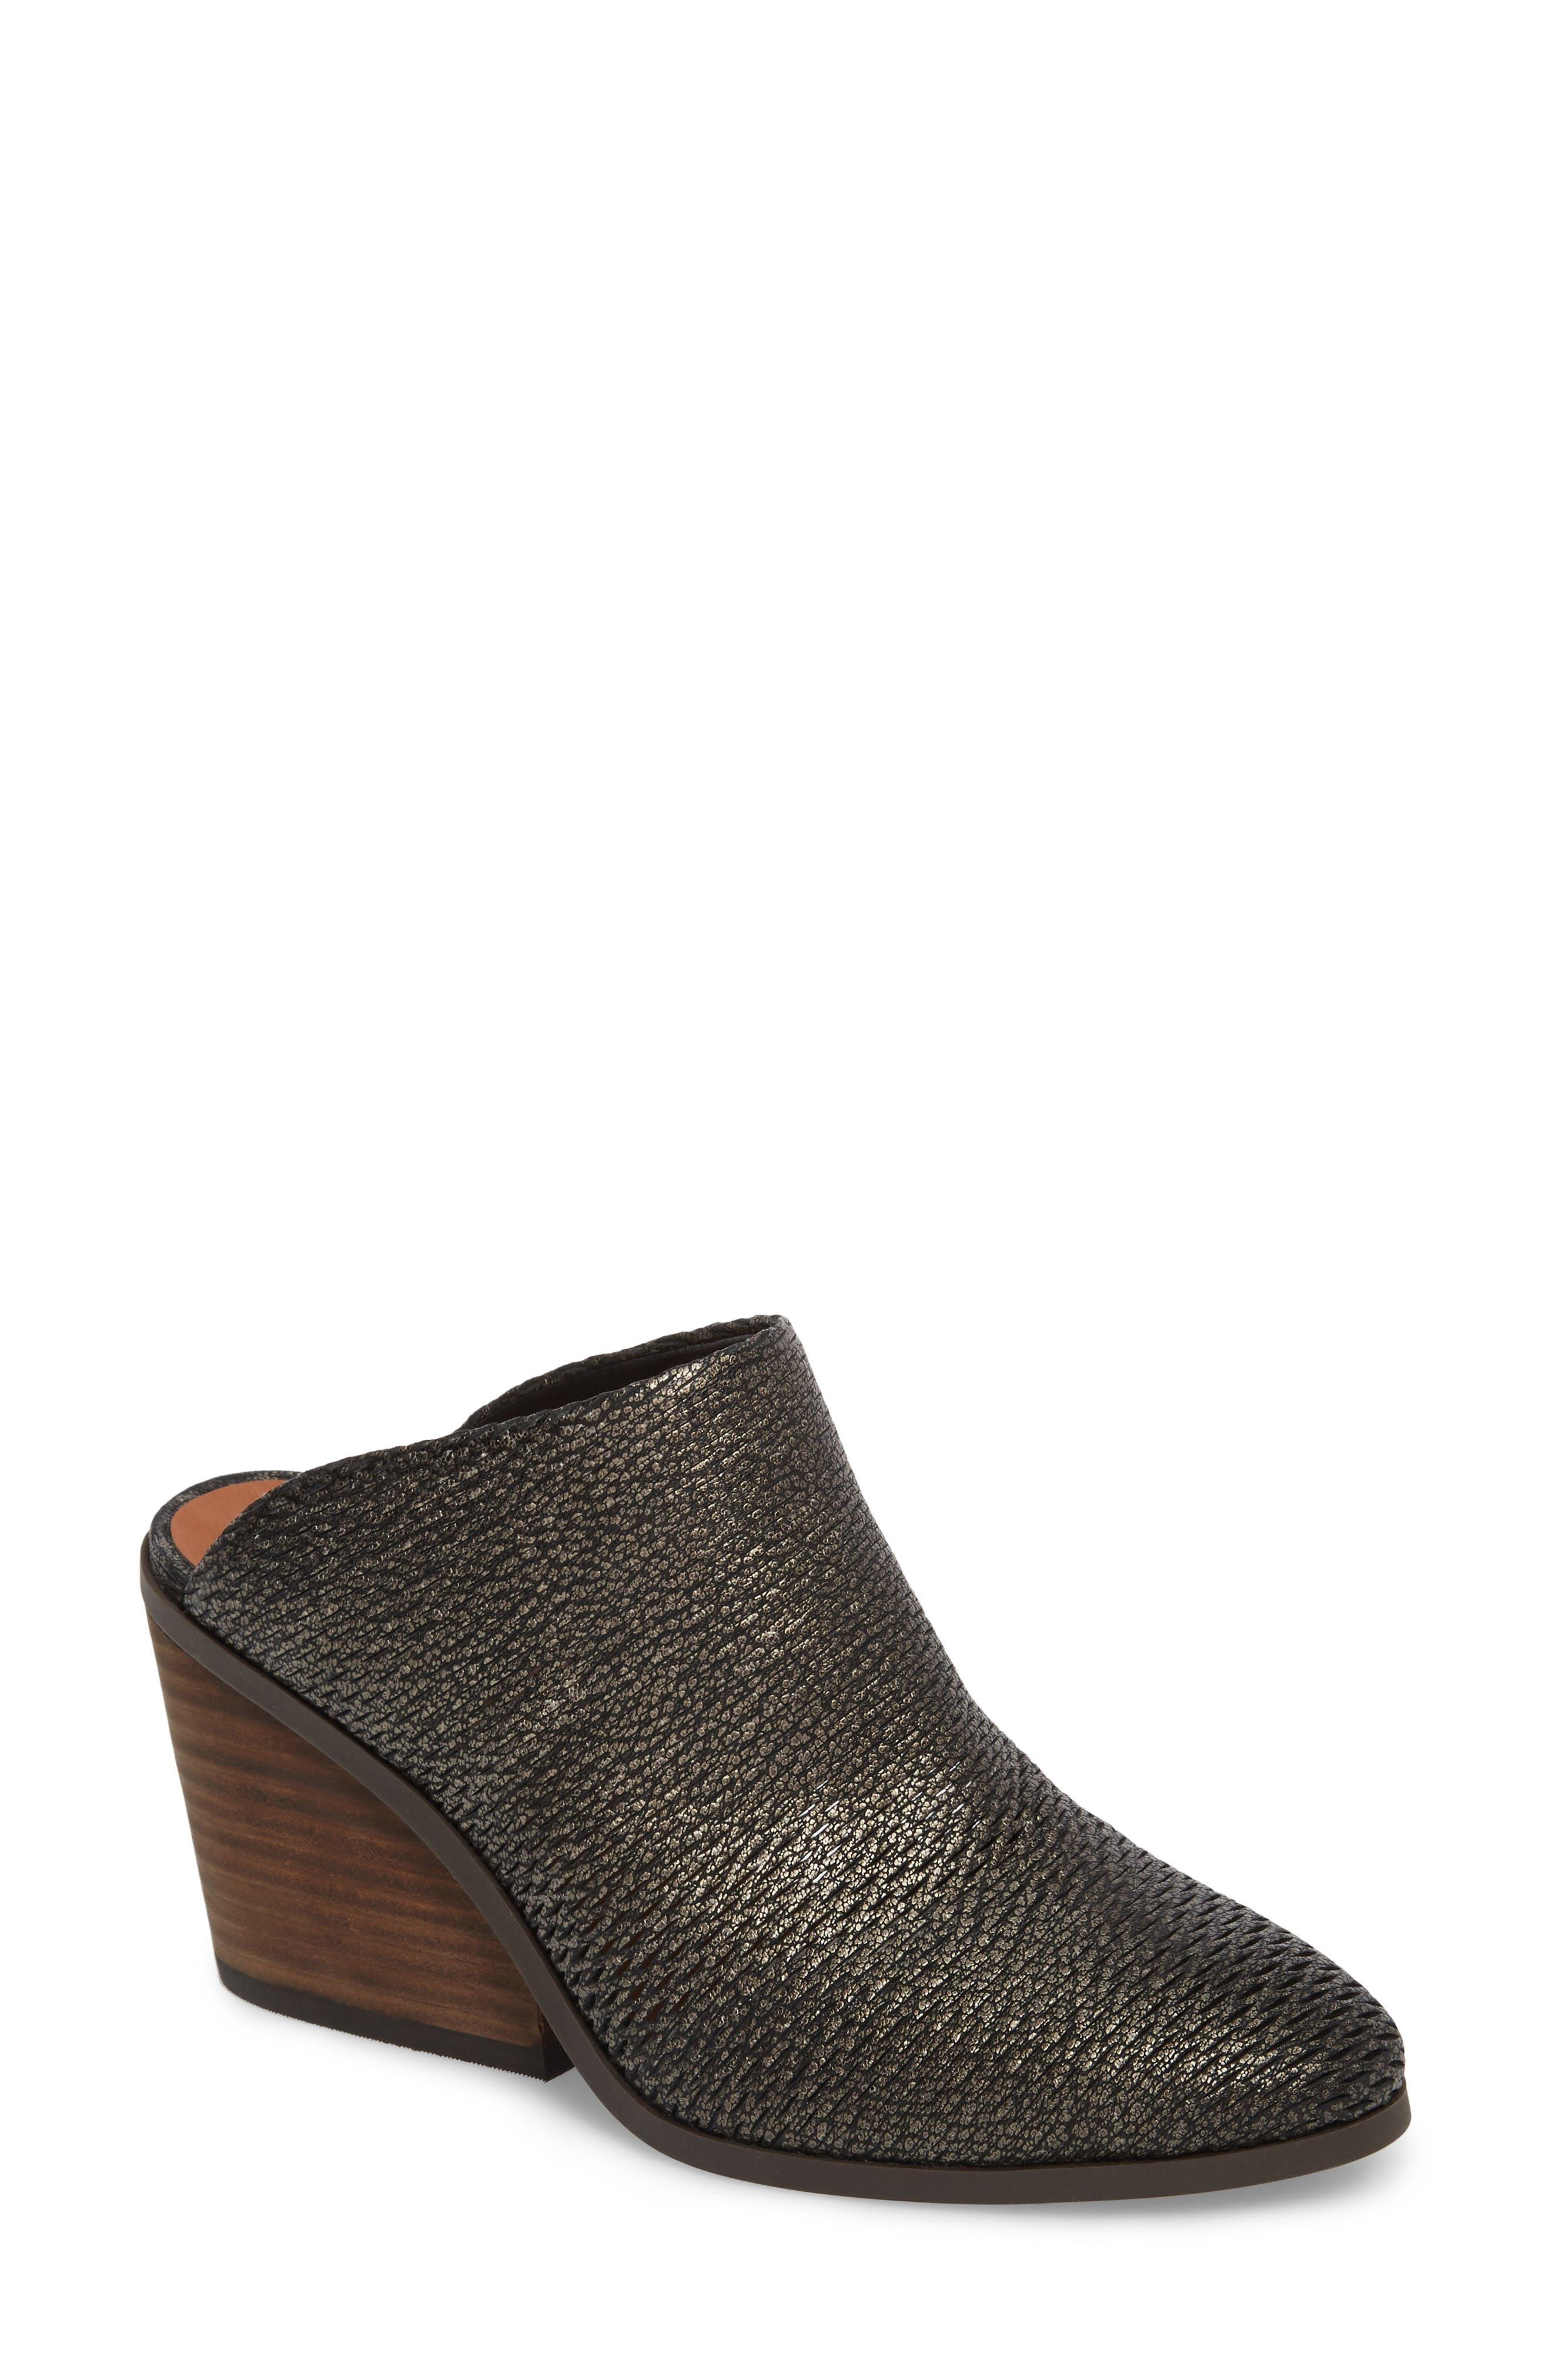 Larsson Mule,                             Main thumbnail 1, color,                             Black Leather